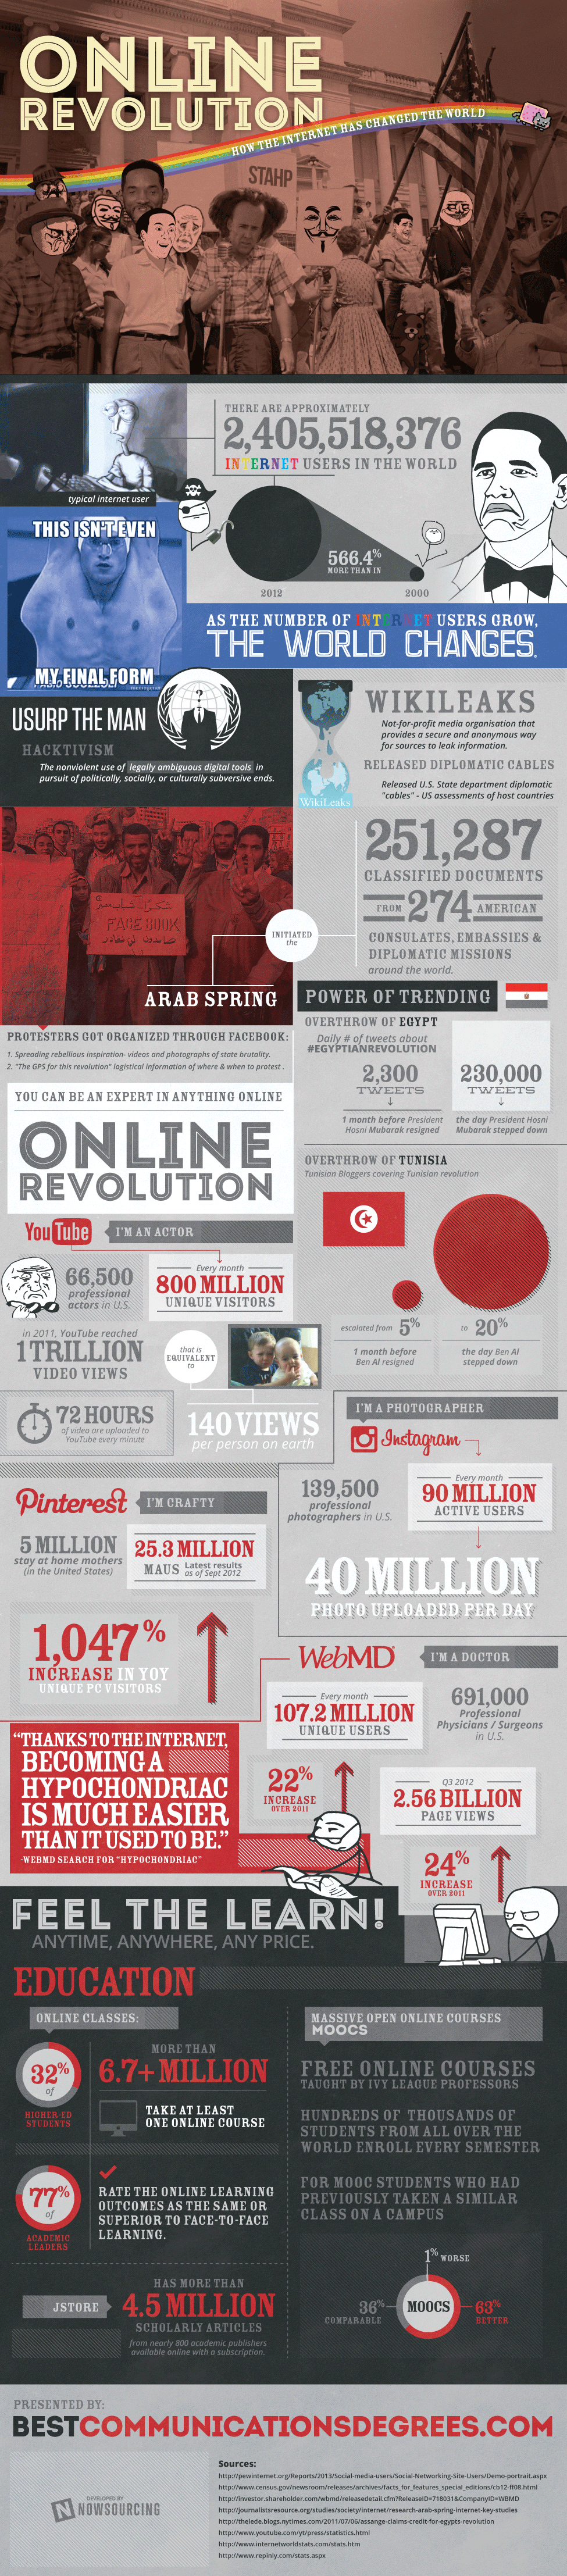 HOnline Revolution: How the Internet has Changed the World